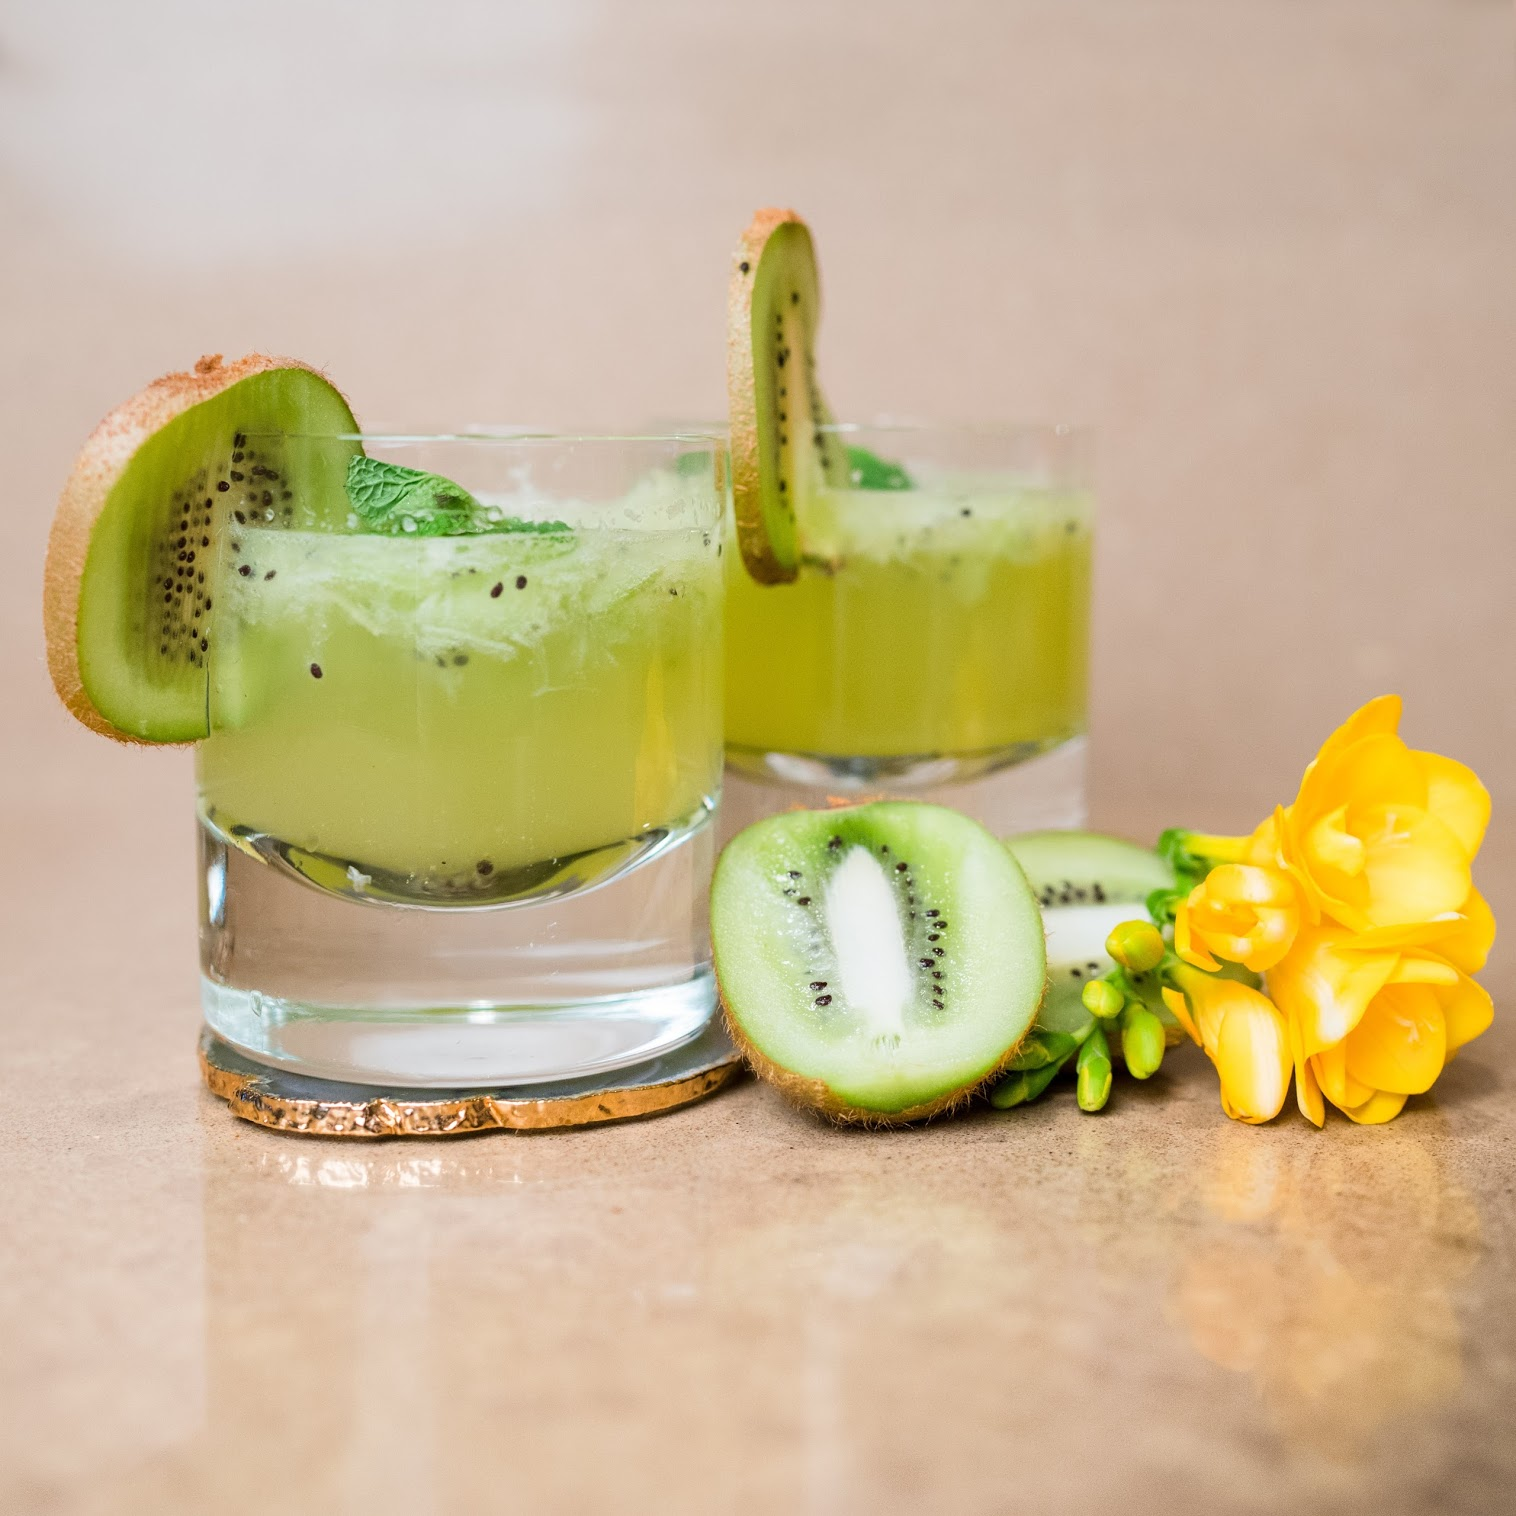 Pineapple-Kiwi Lemon Sparkler